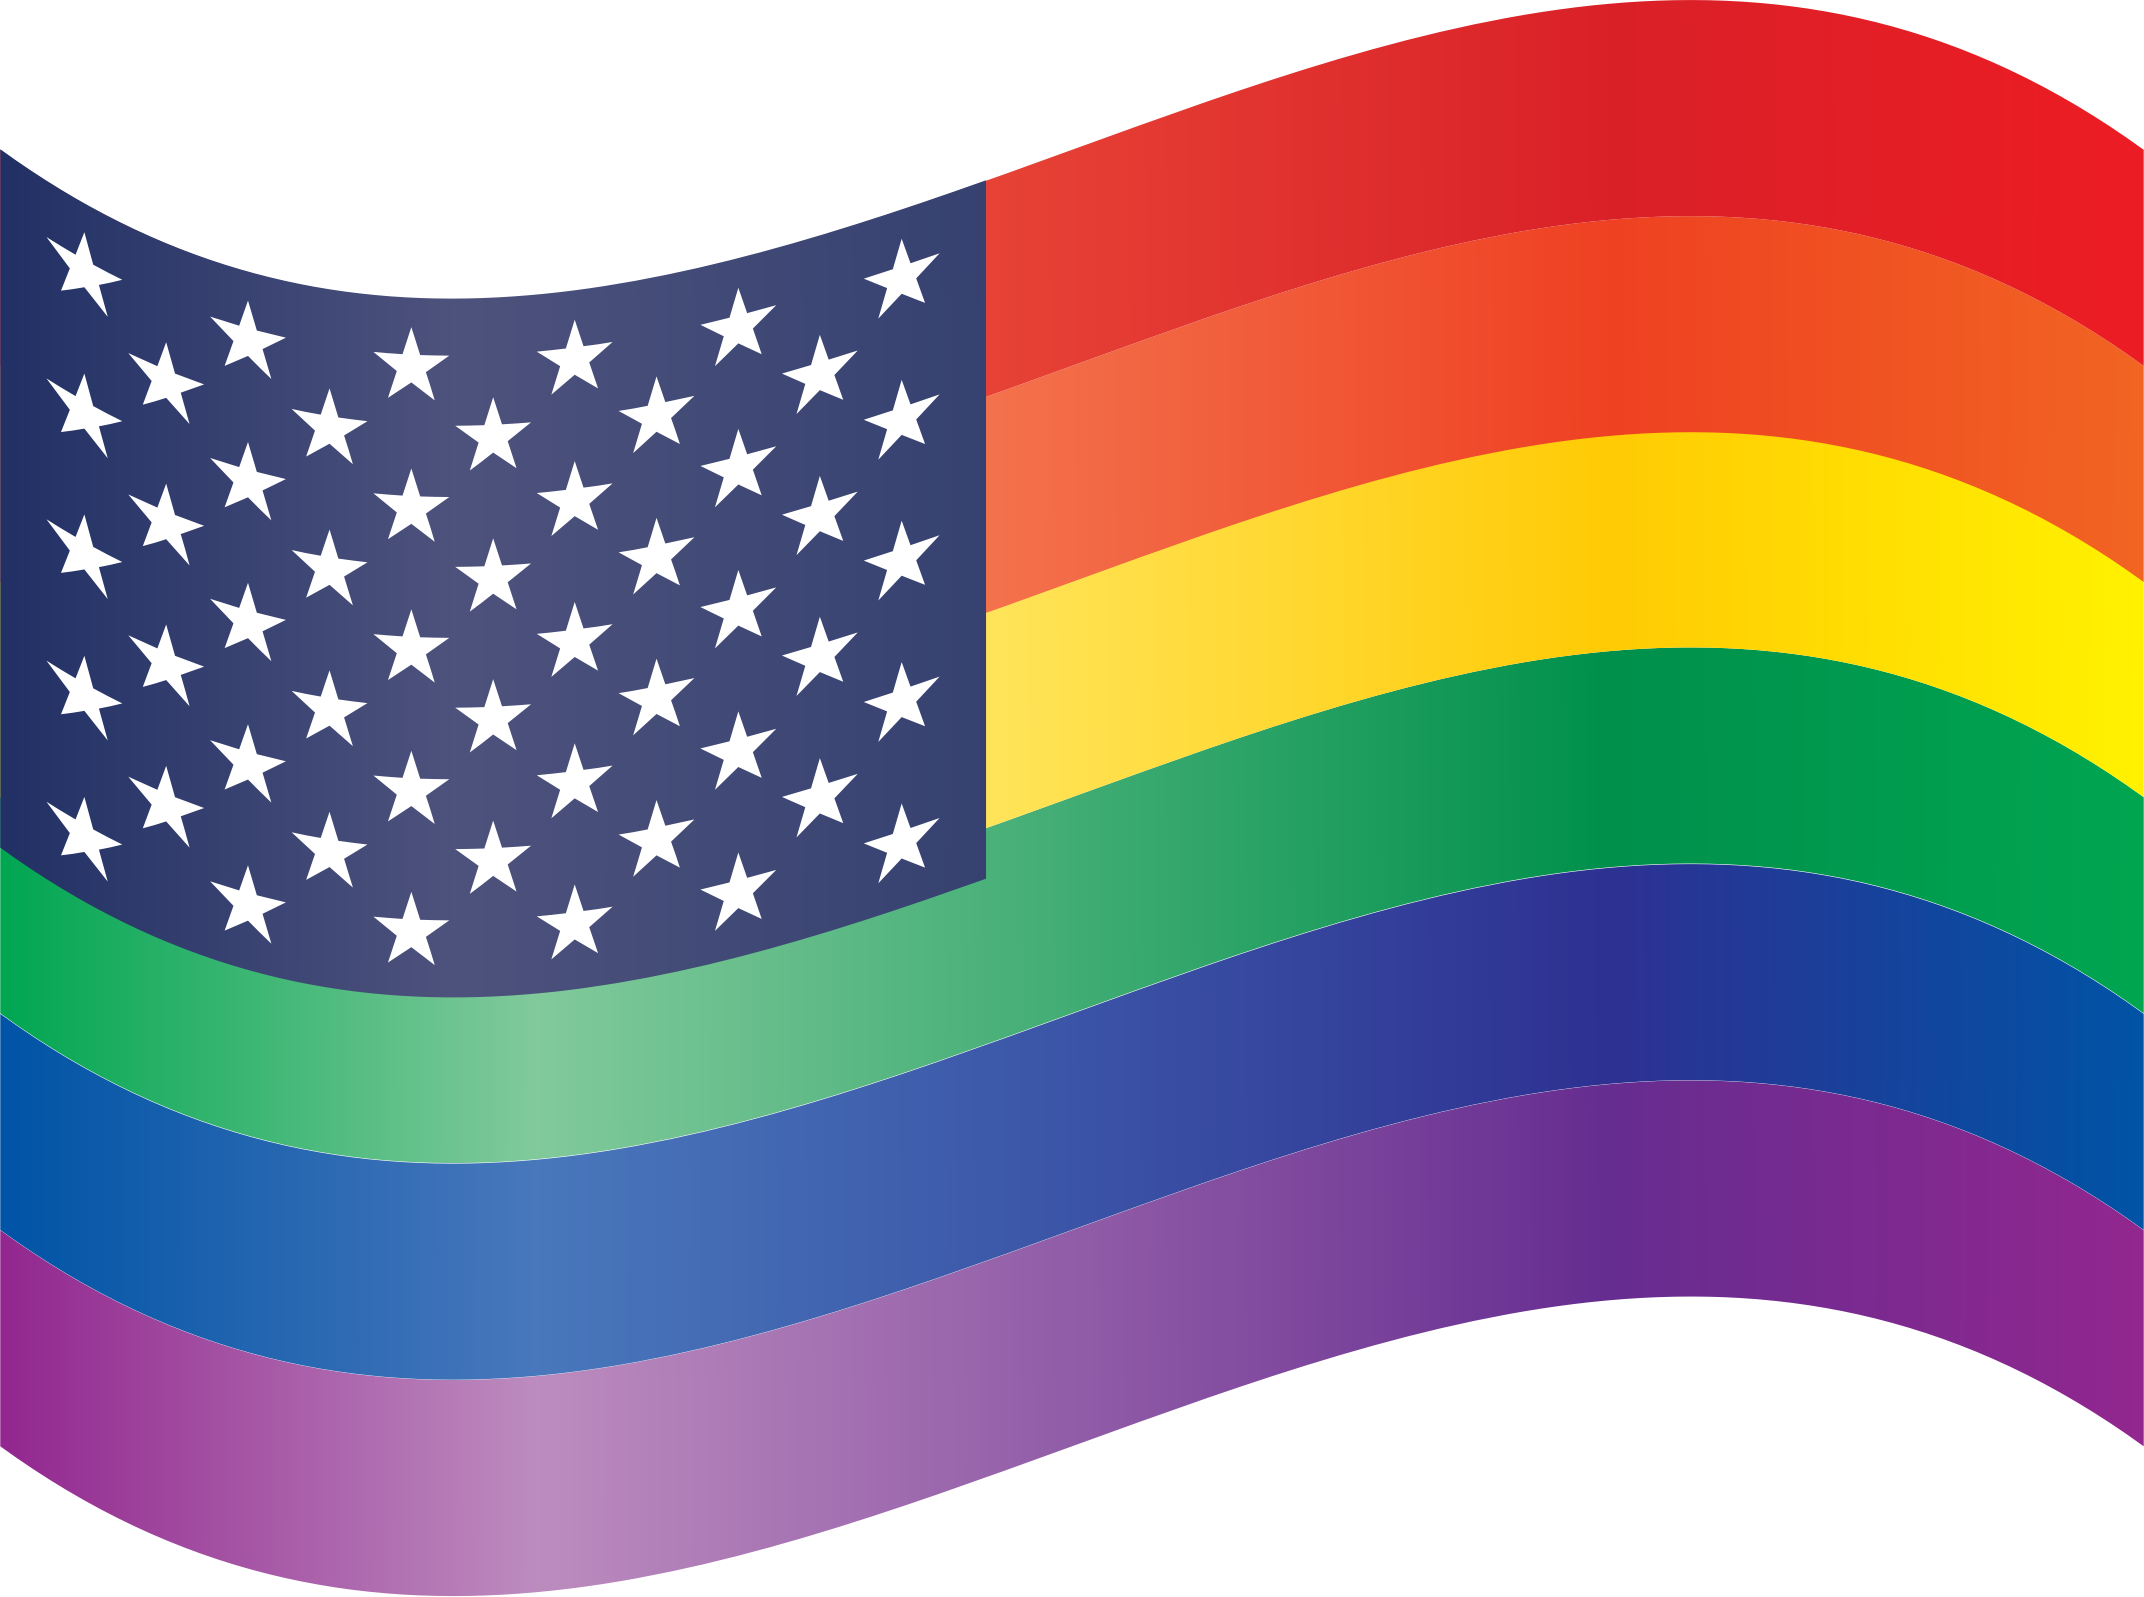 Waving Rainbow Stars and Stripes by feorag